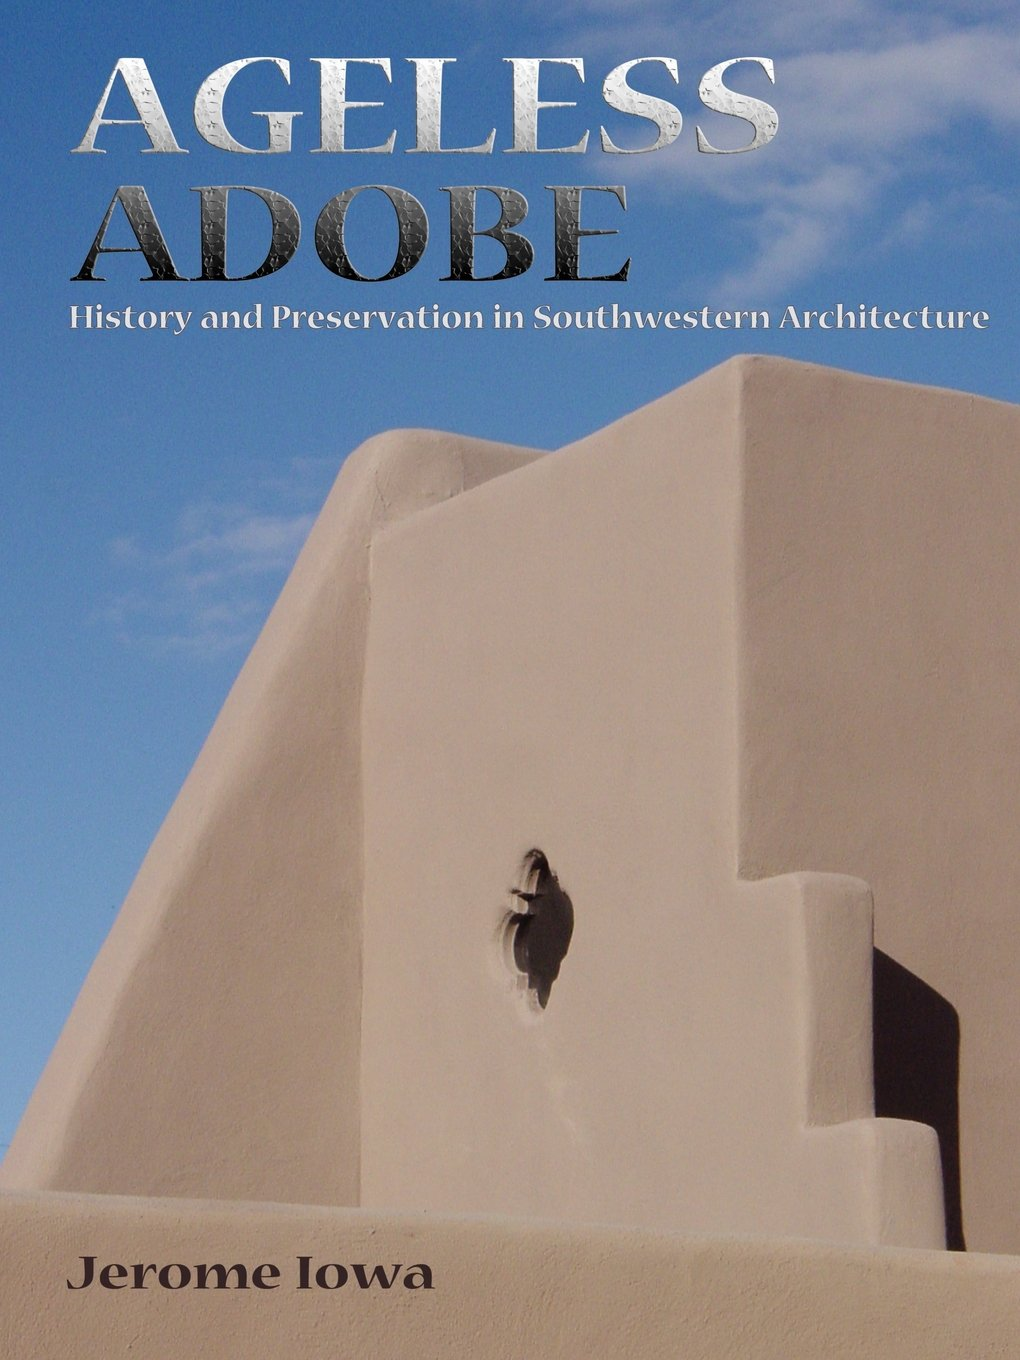 Ageless Adobe, History and Preservation in Southwestern Architecture